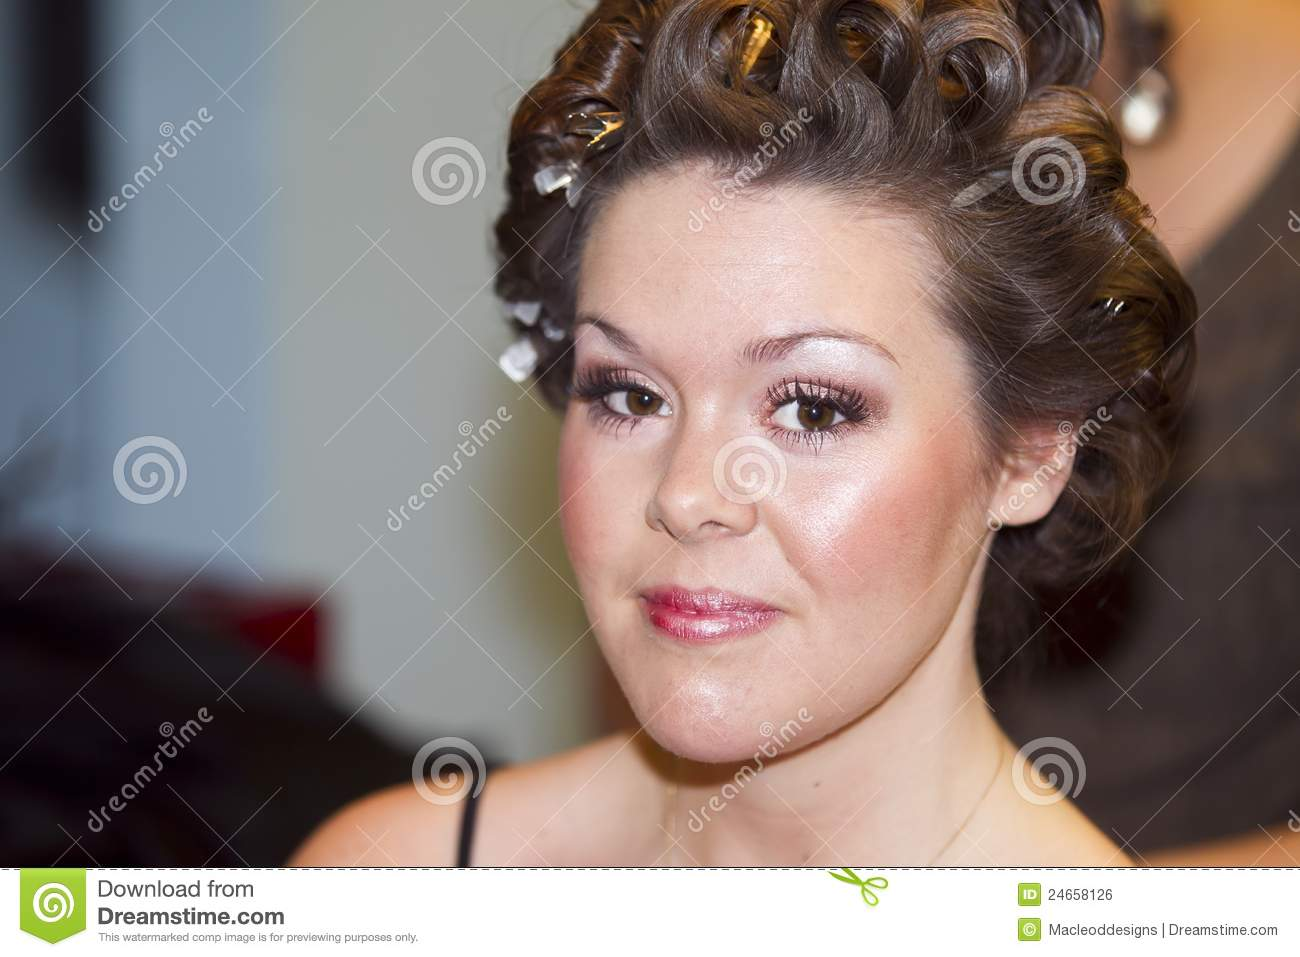 Young Woman Getting Makeup Done Royalty Free Stock Image